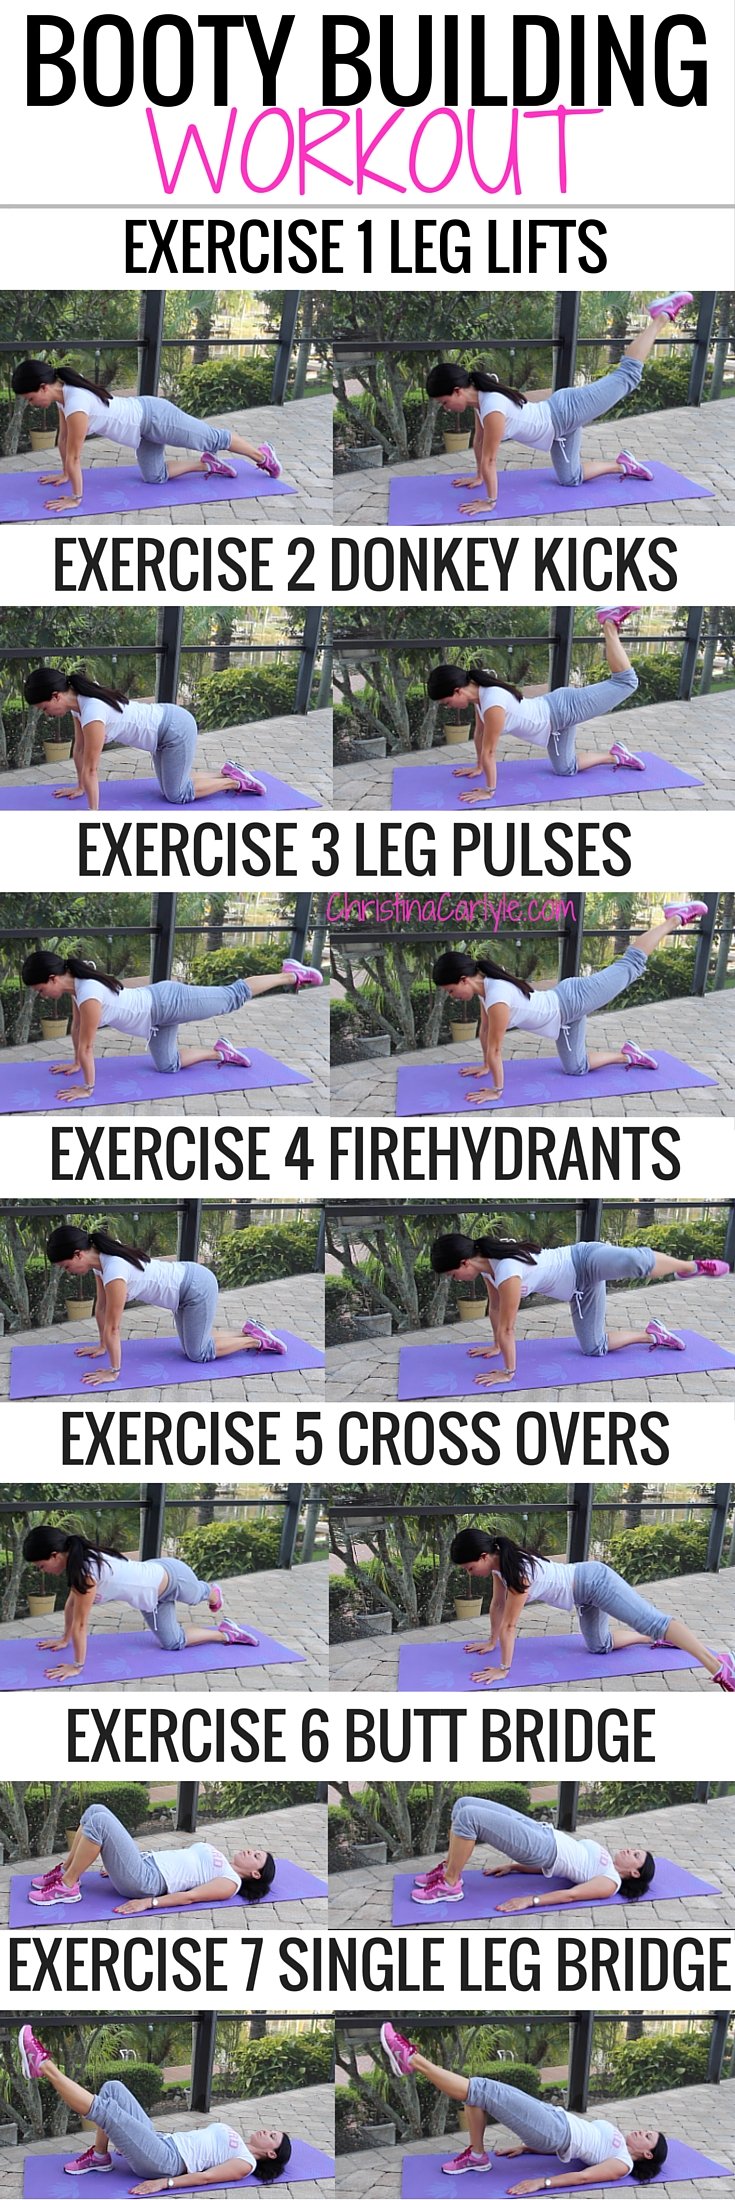 Butt Exercises Christina Carlyle